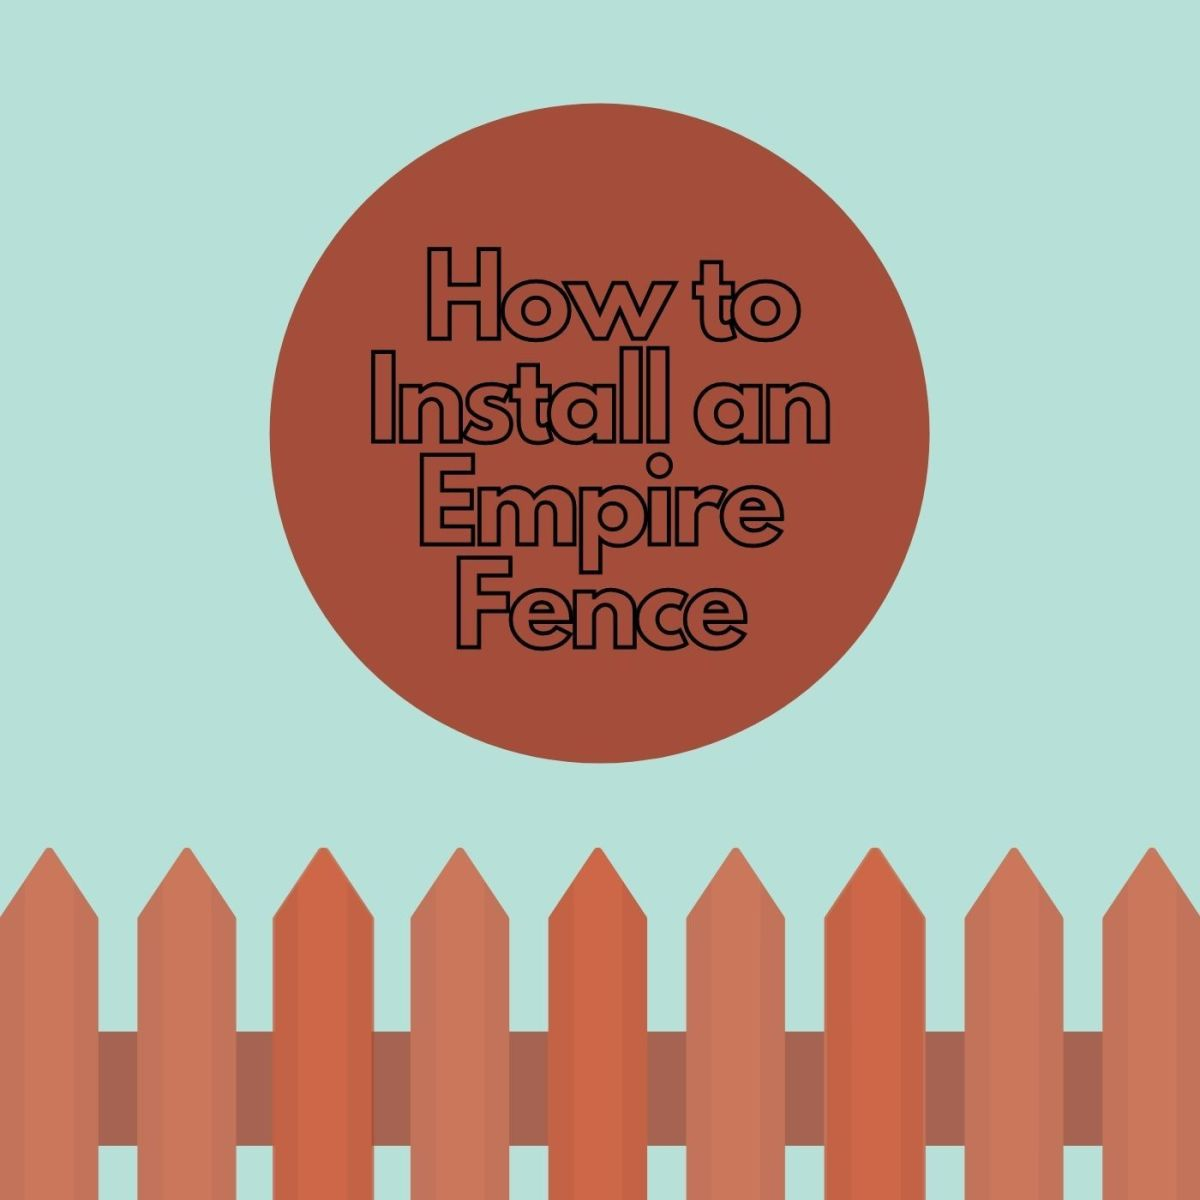 Installing a fence doesn't have to be difficult!